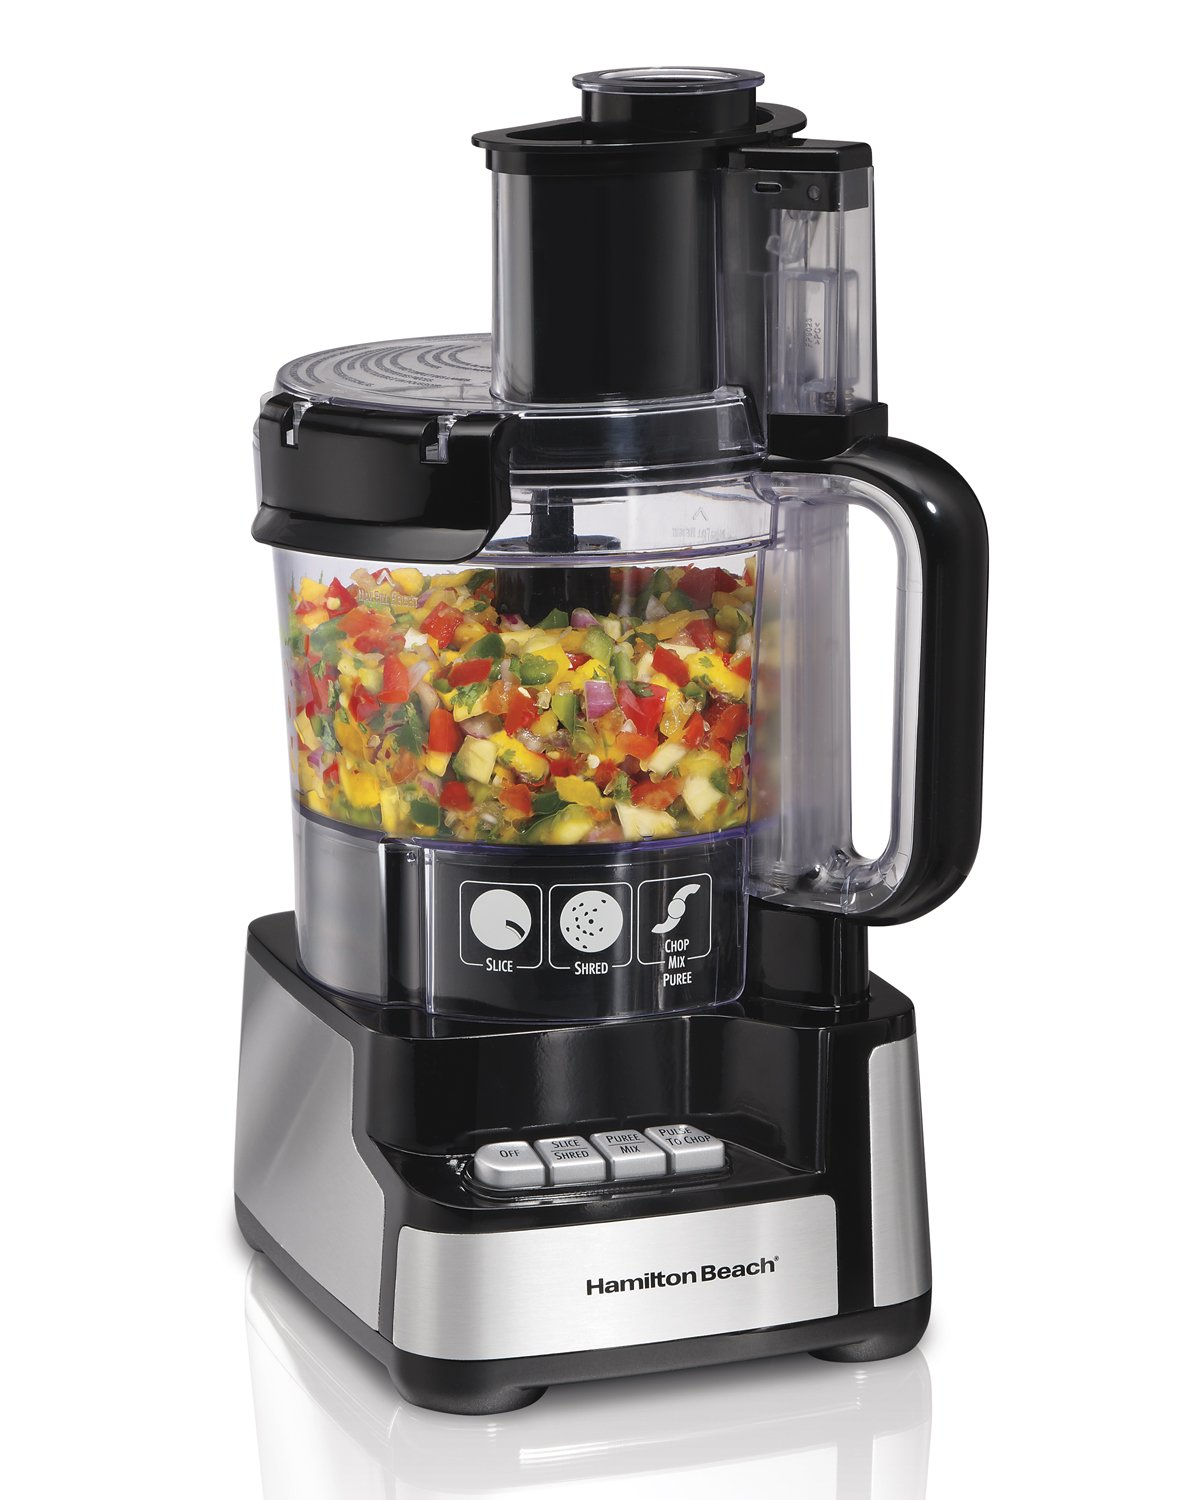 Hamilton Beach 70725A 12-Cup Stack & Snap Food Processor and Vegetable Chopper, Black